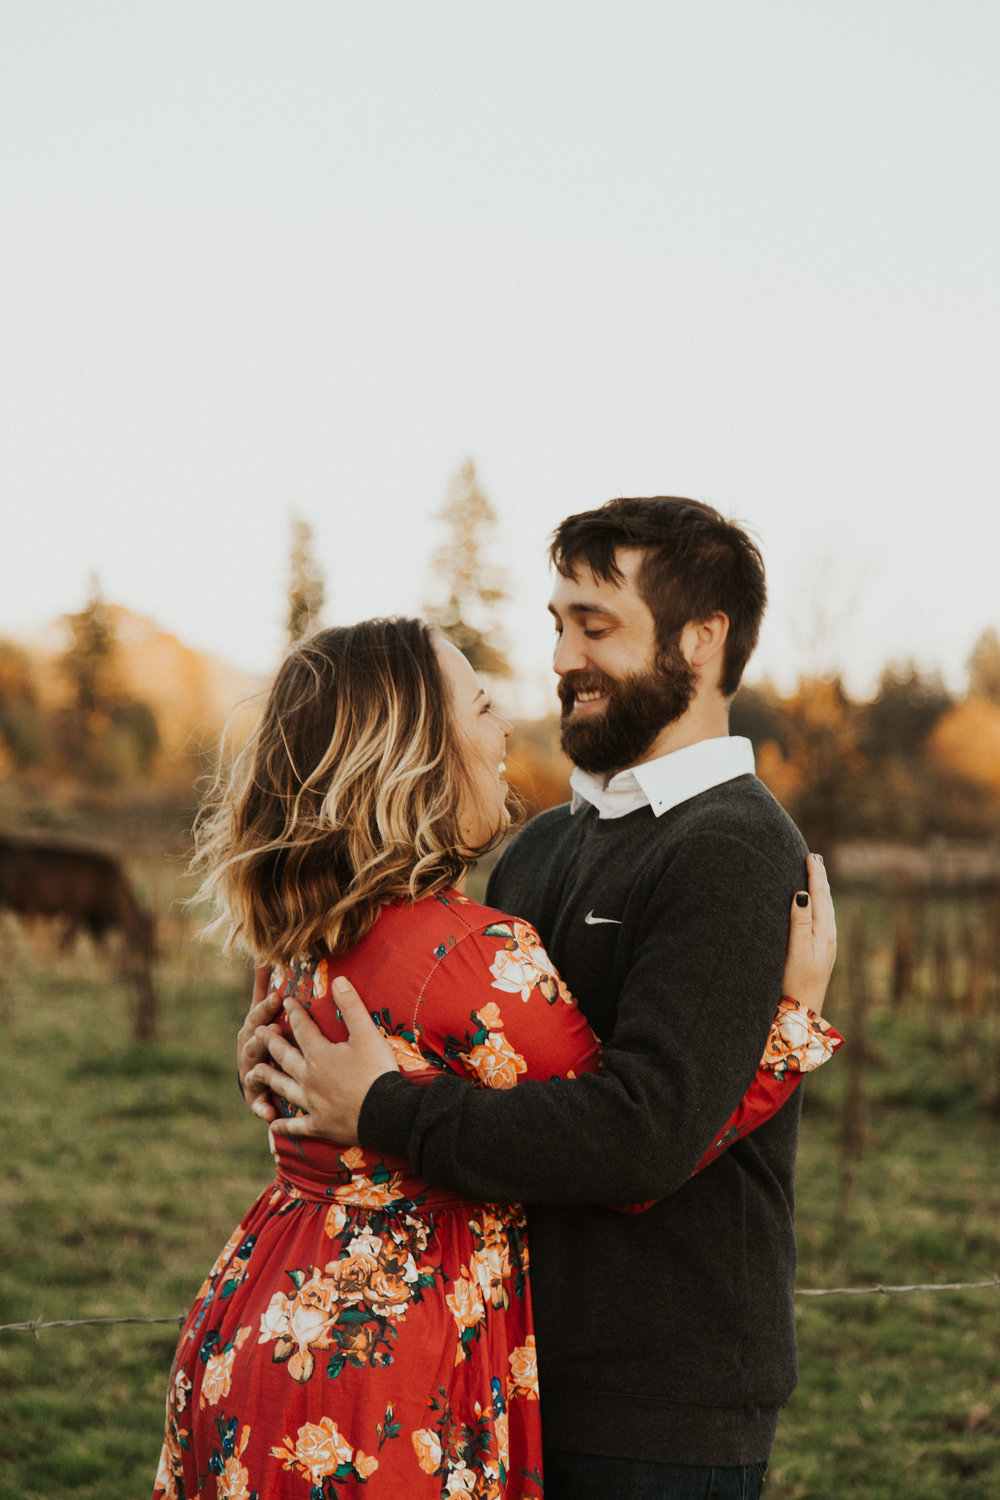 August-Muse-images-taylor-kelsey-vancouver-pumpkin-patch-washington-engagement-8.jpg